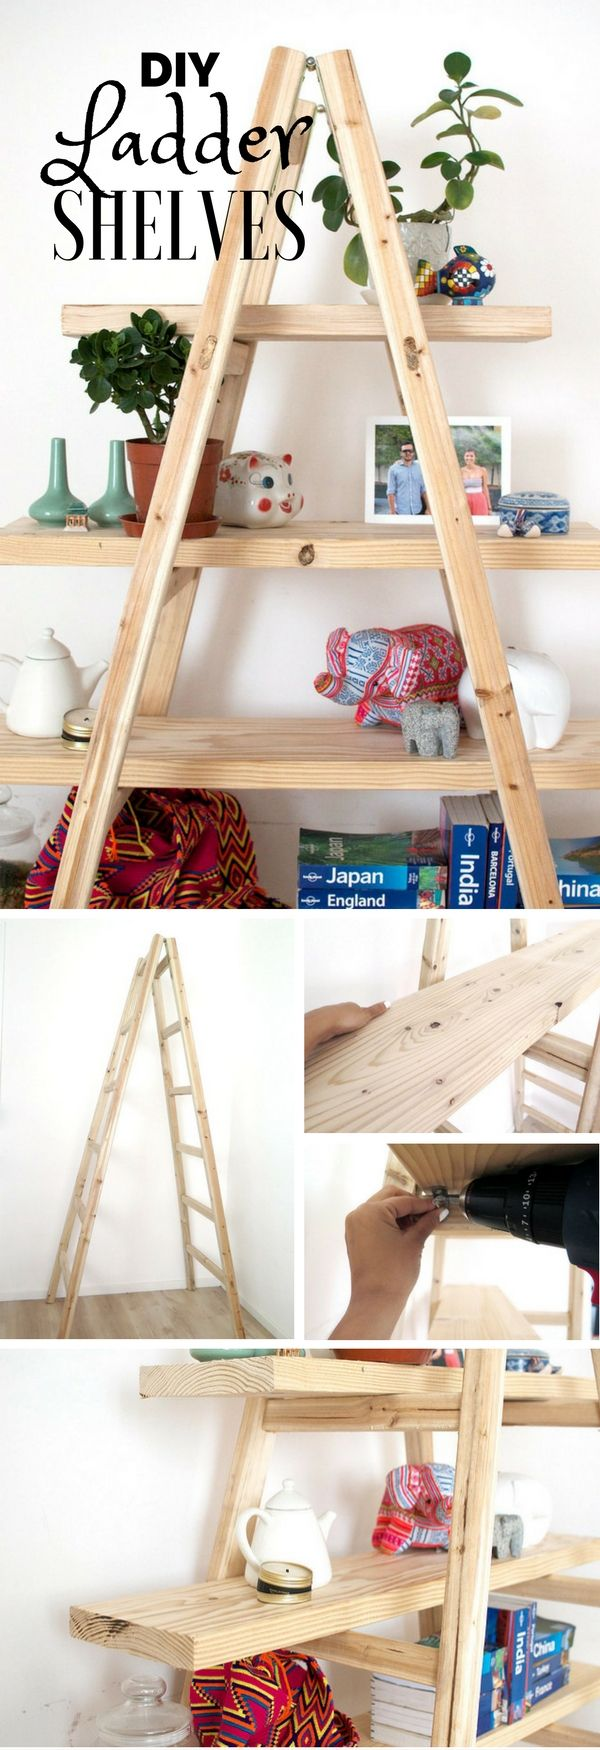 Check out the tutorial: #DIY Ladder Shelves @istandarddesign                                                                                                                                                     More